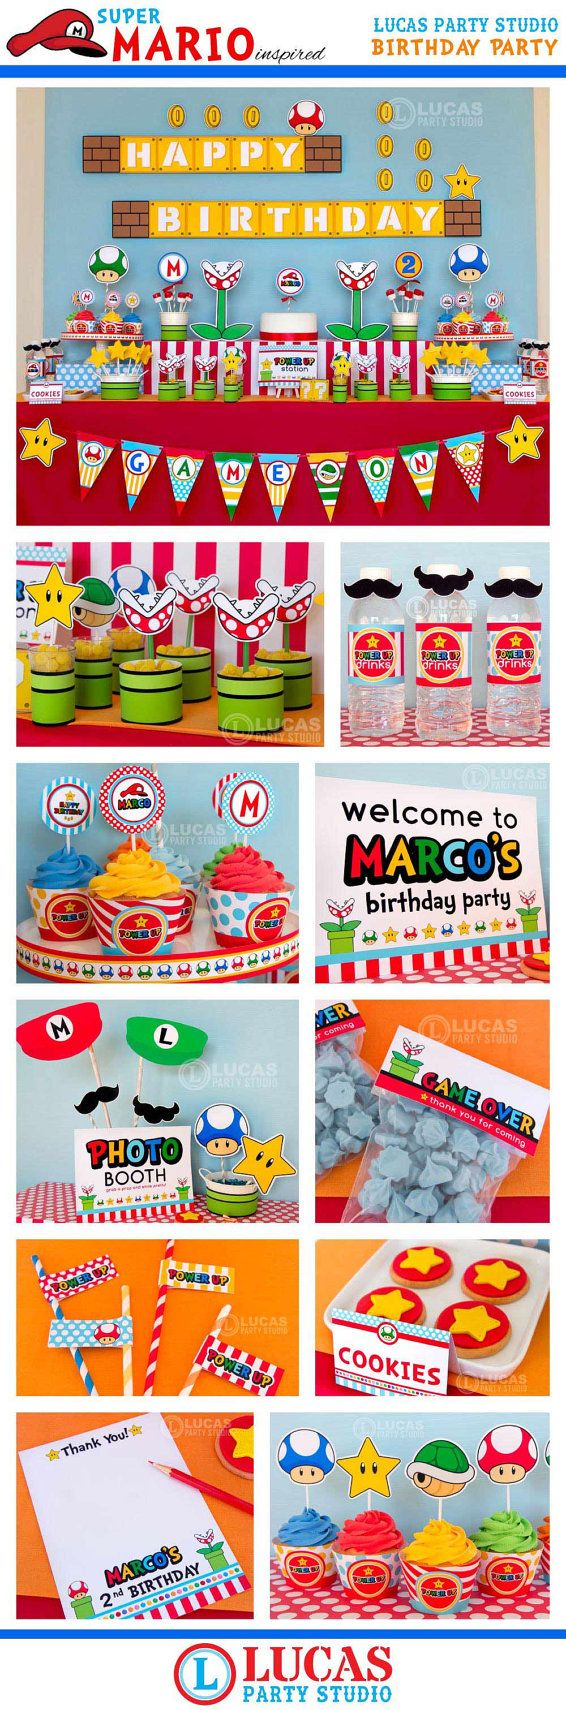 Super Mario Inspired Birthday Party DIY by LucasPartyStudio                                                                                                                                                                                 More